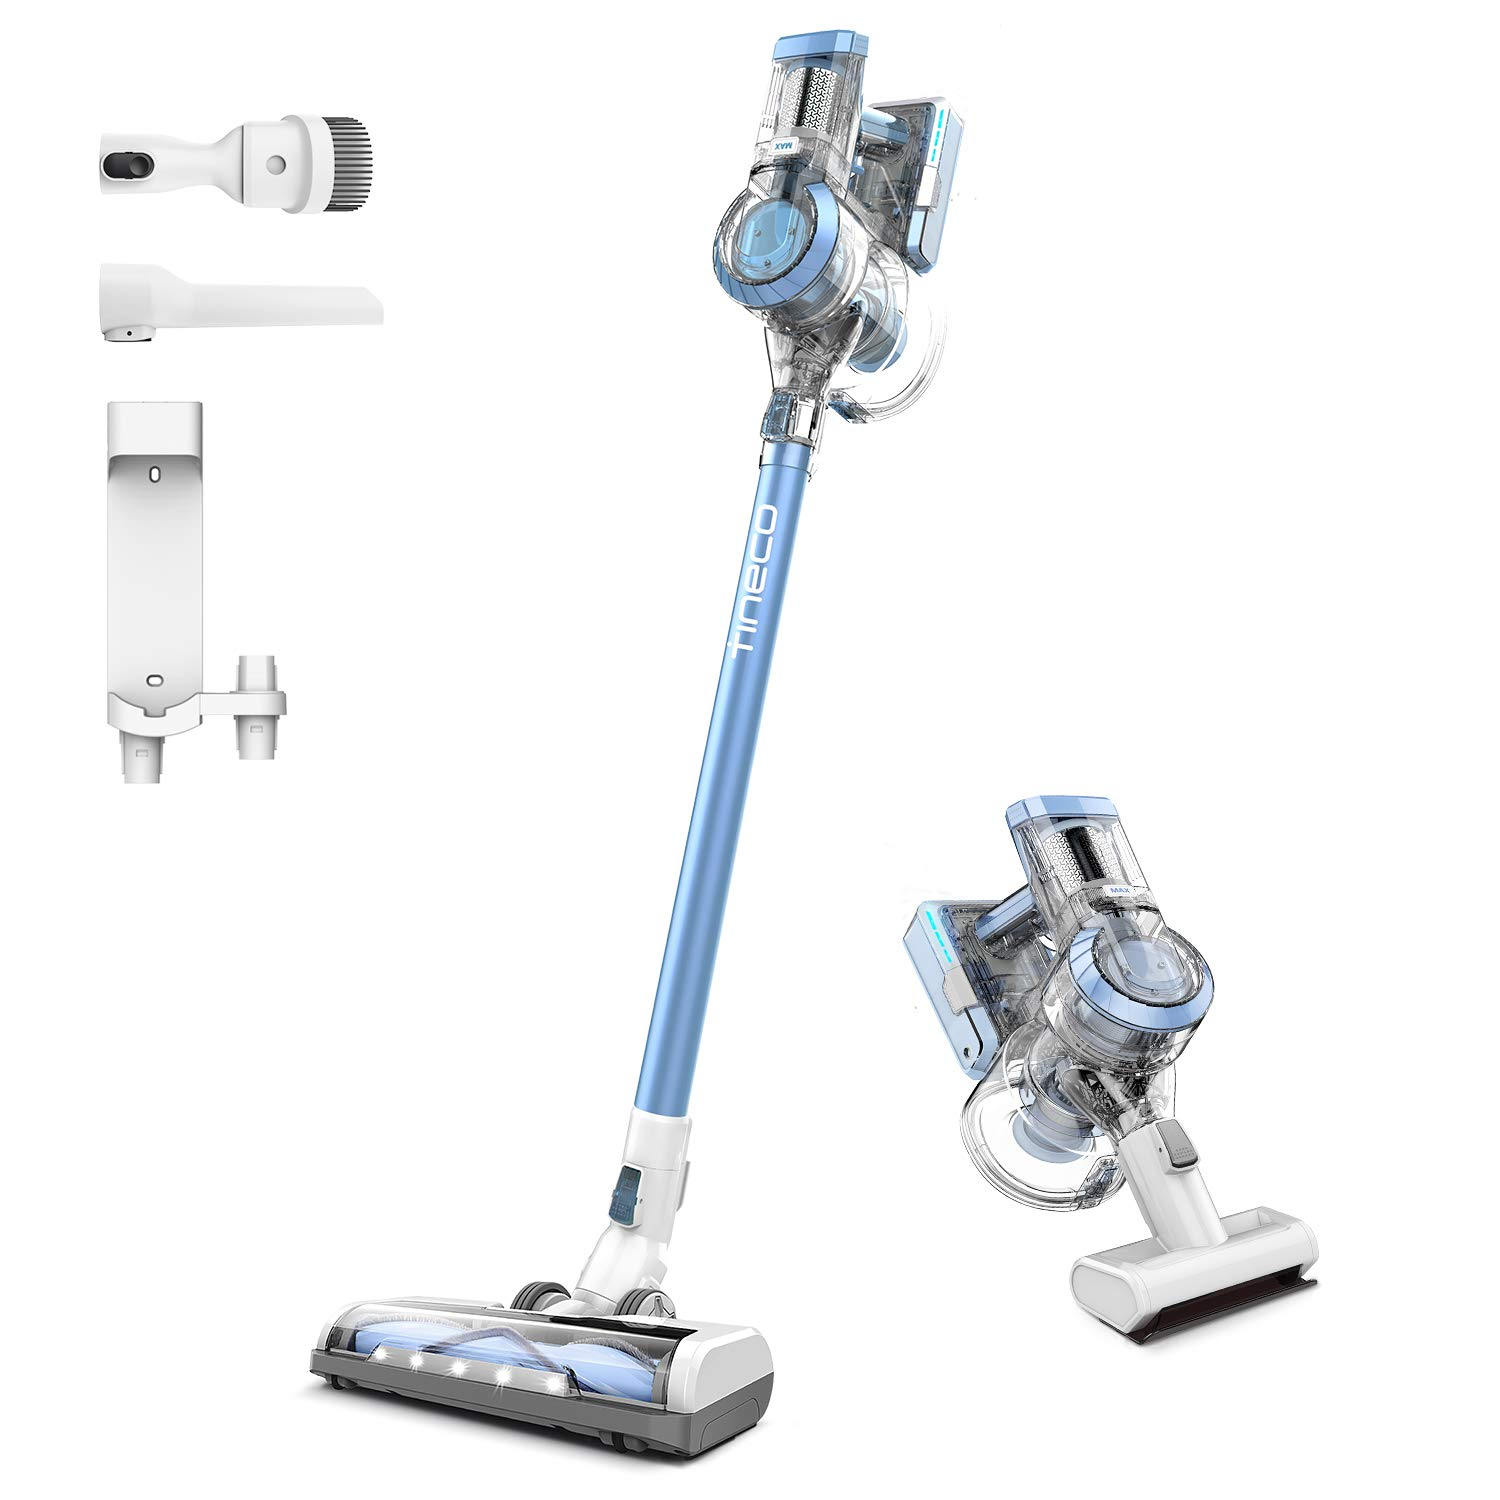 Tineco A11 Master Cordless Vacuum Cleaner Handheld Stick Vacuum 450W Rating Power Powerhouse Charging 2 LED Powered Brushes for Hardwood Floors Carpet Pet Hair Clean